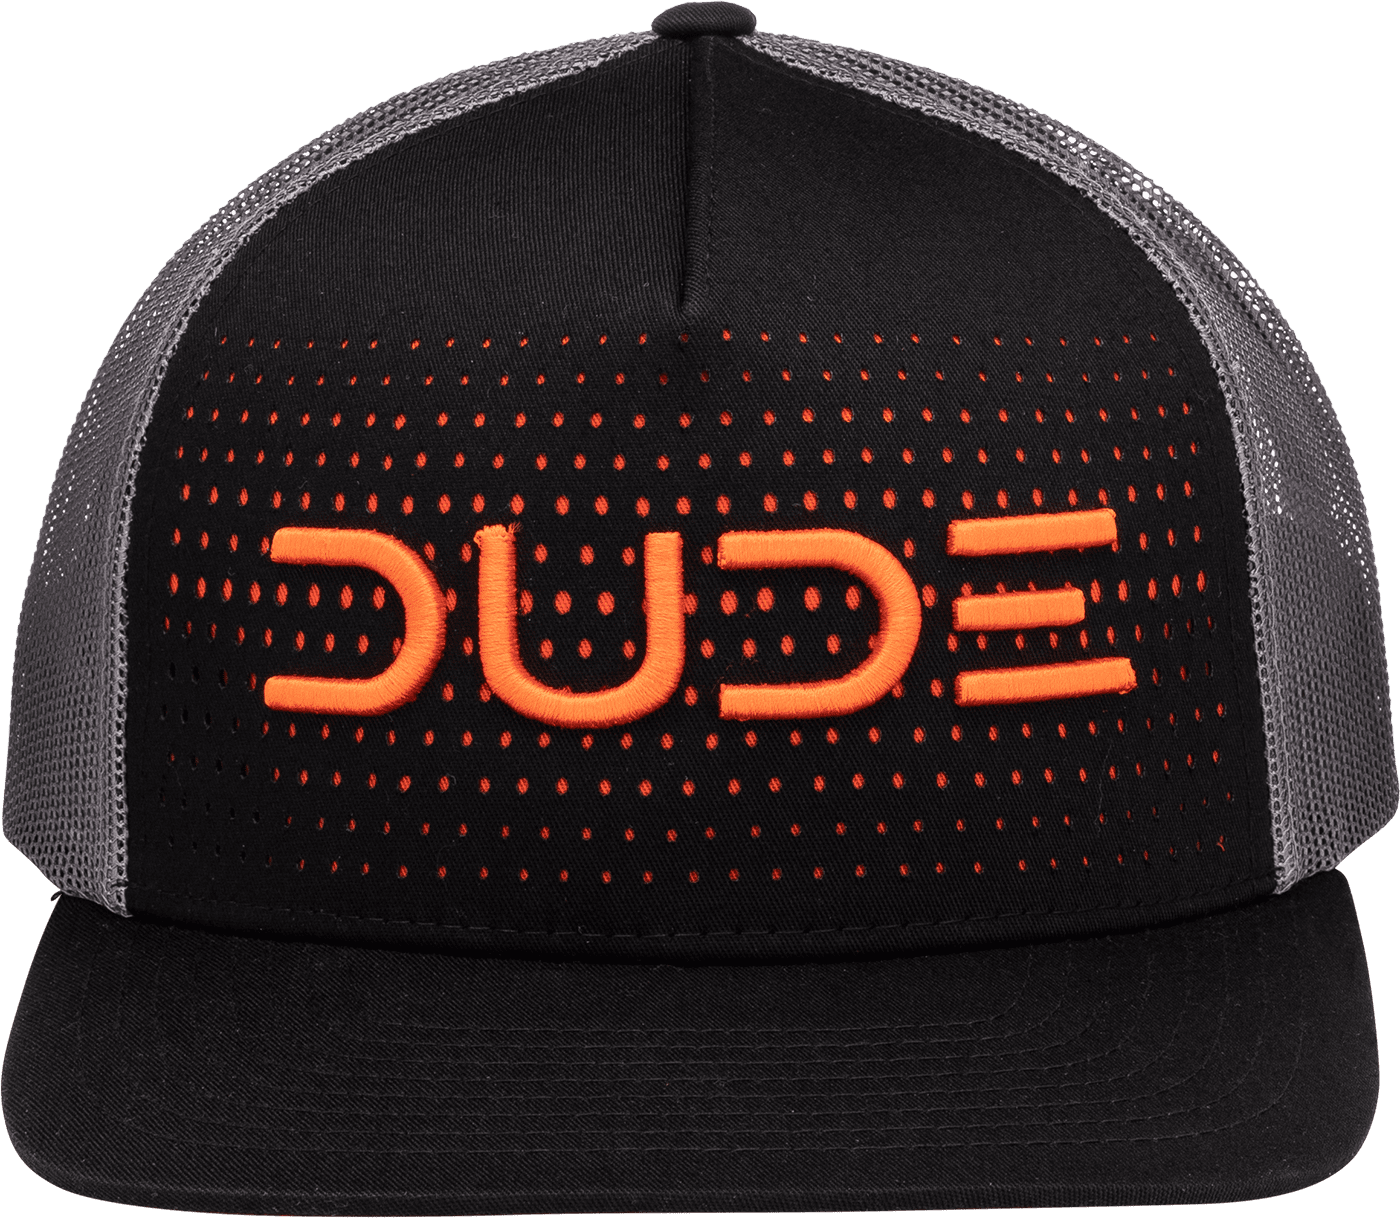 Black & Orange, 5 Panel Trucker - DudeProducts